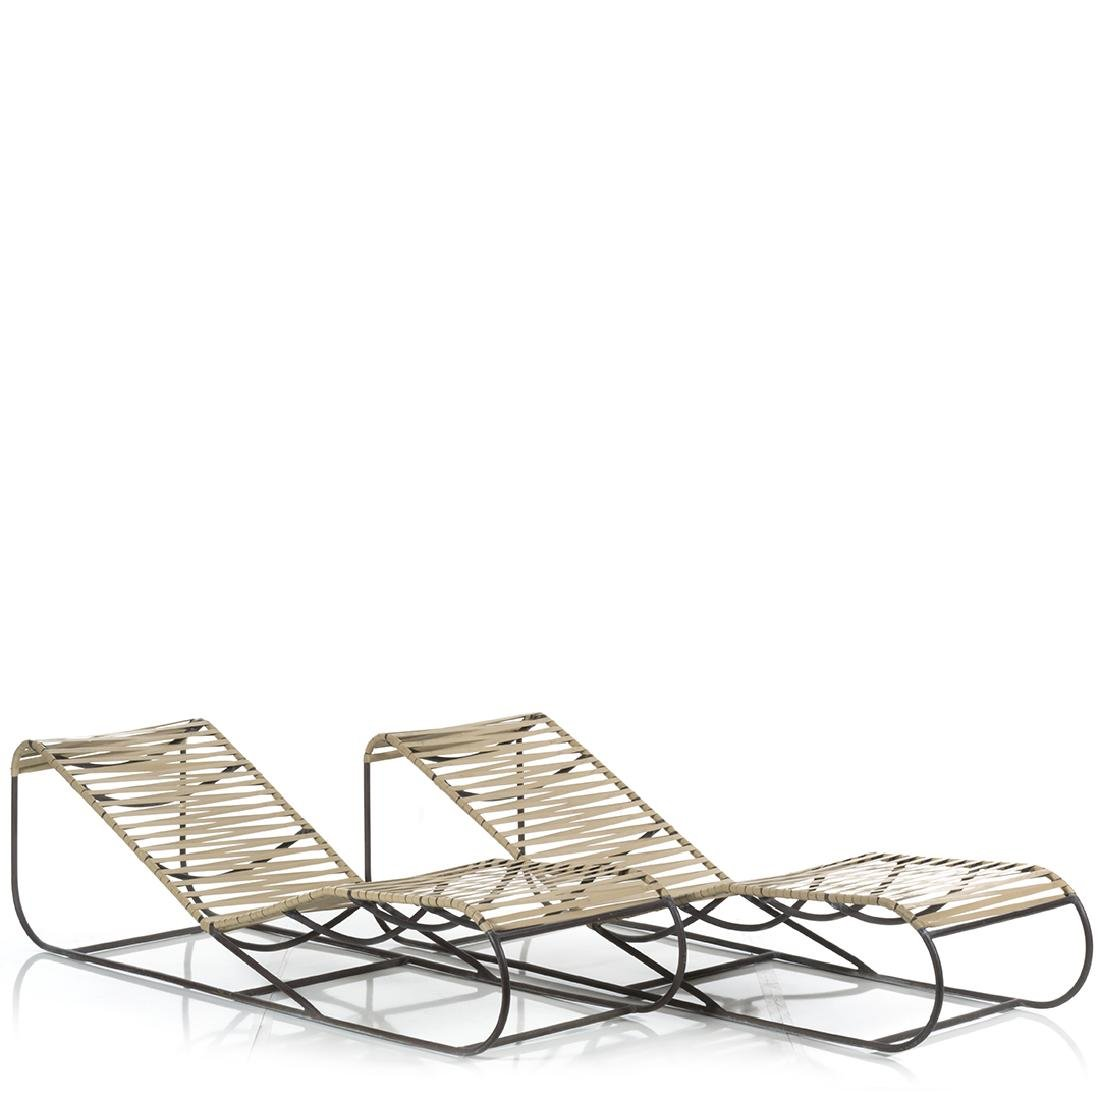 Kipp Stewart Bronze Chaise Lounges (2) - 2